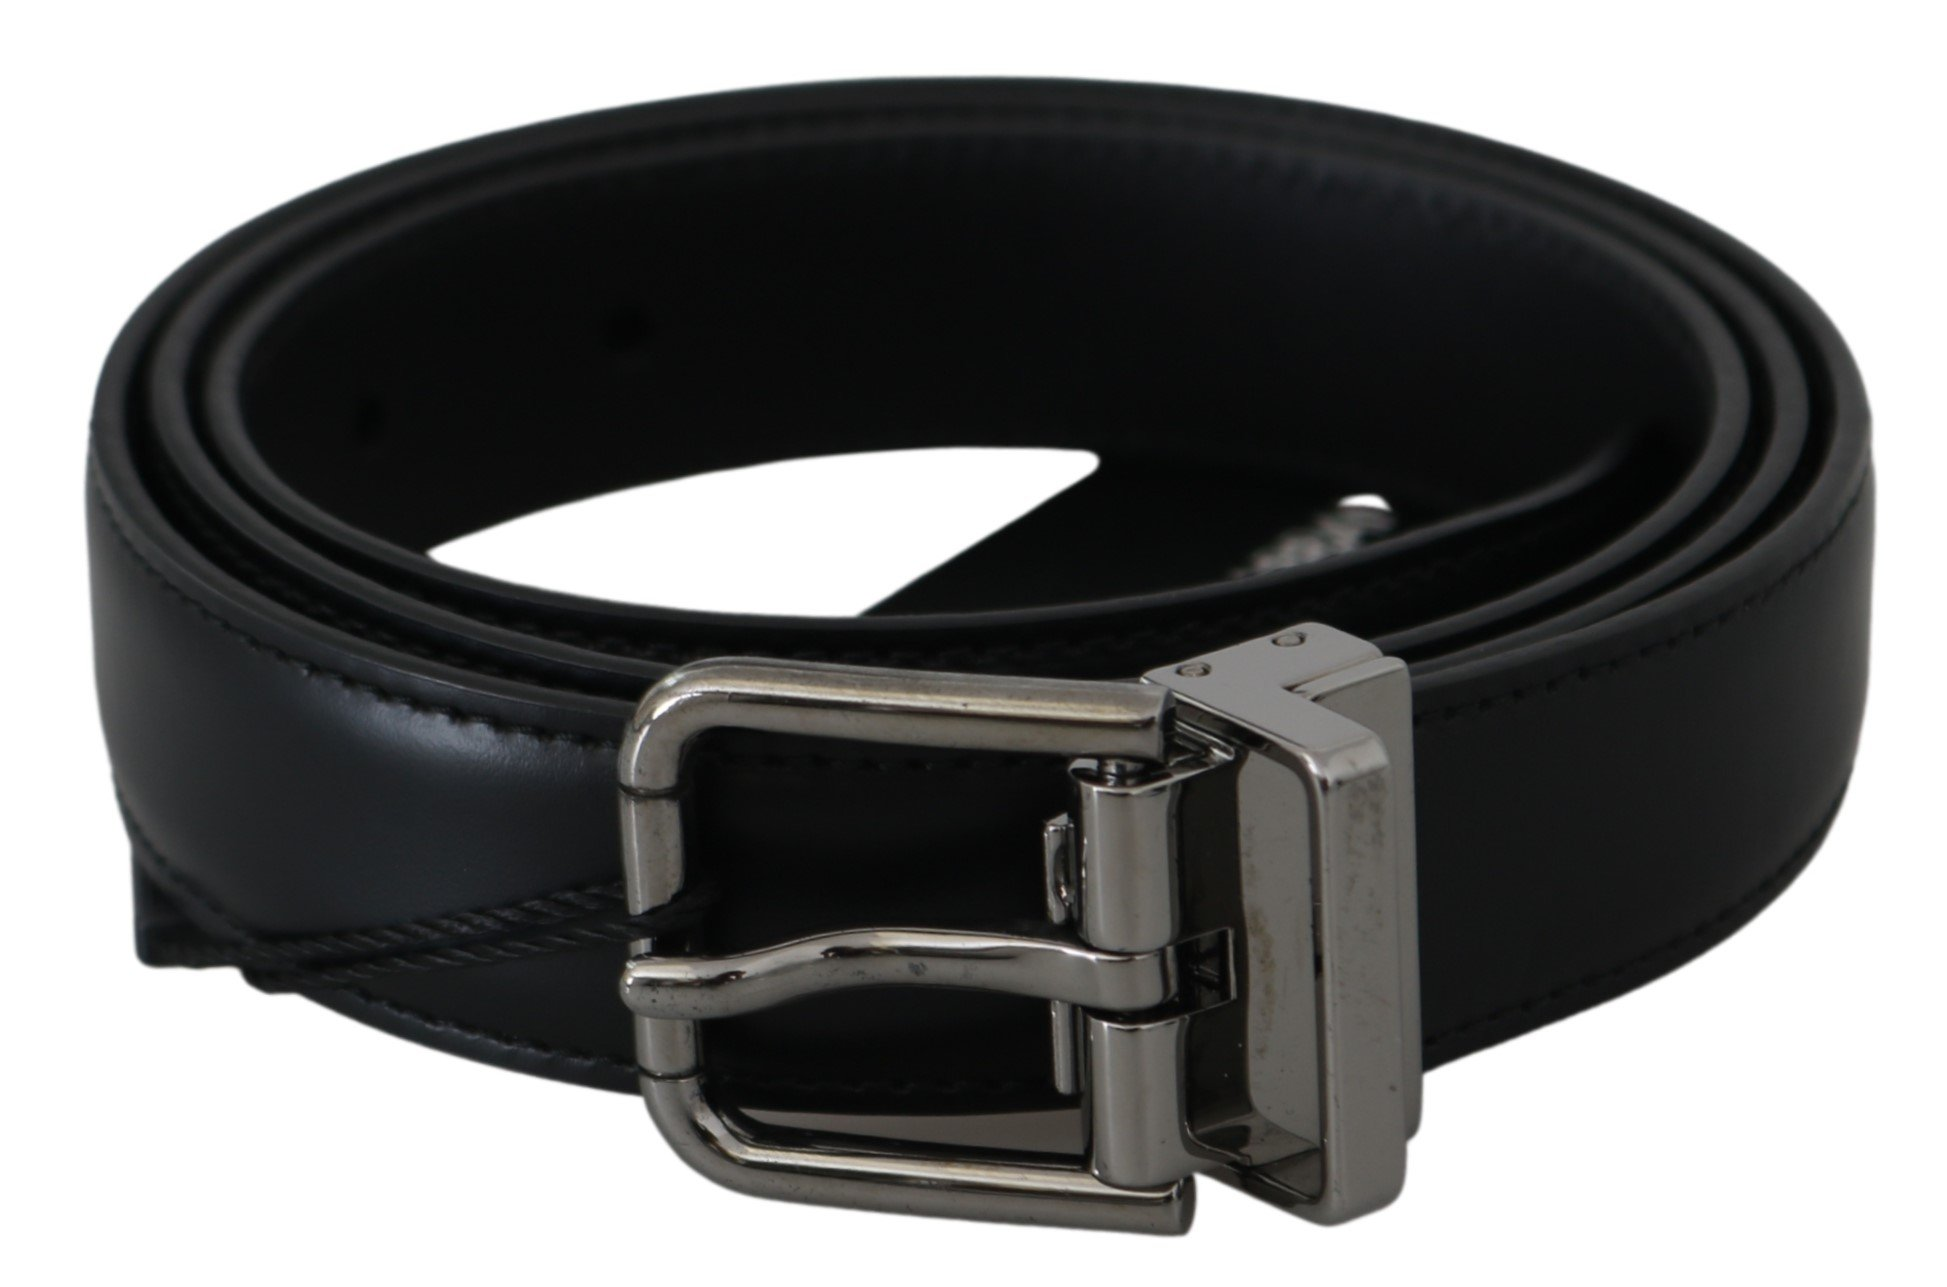 Black Solid Leather Gray Buckle Belt - 95 cm / 38 Inches